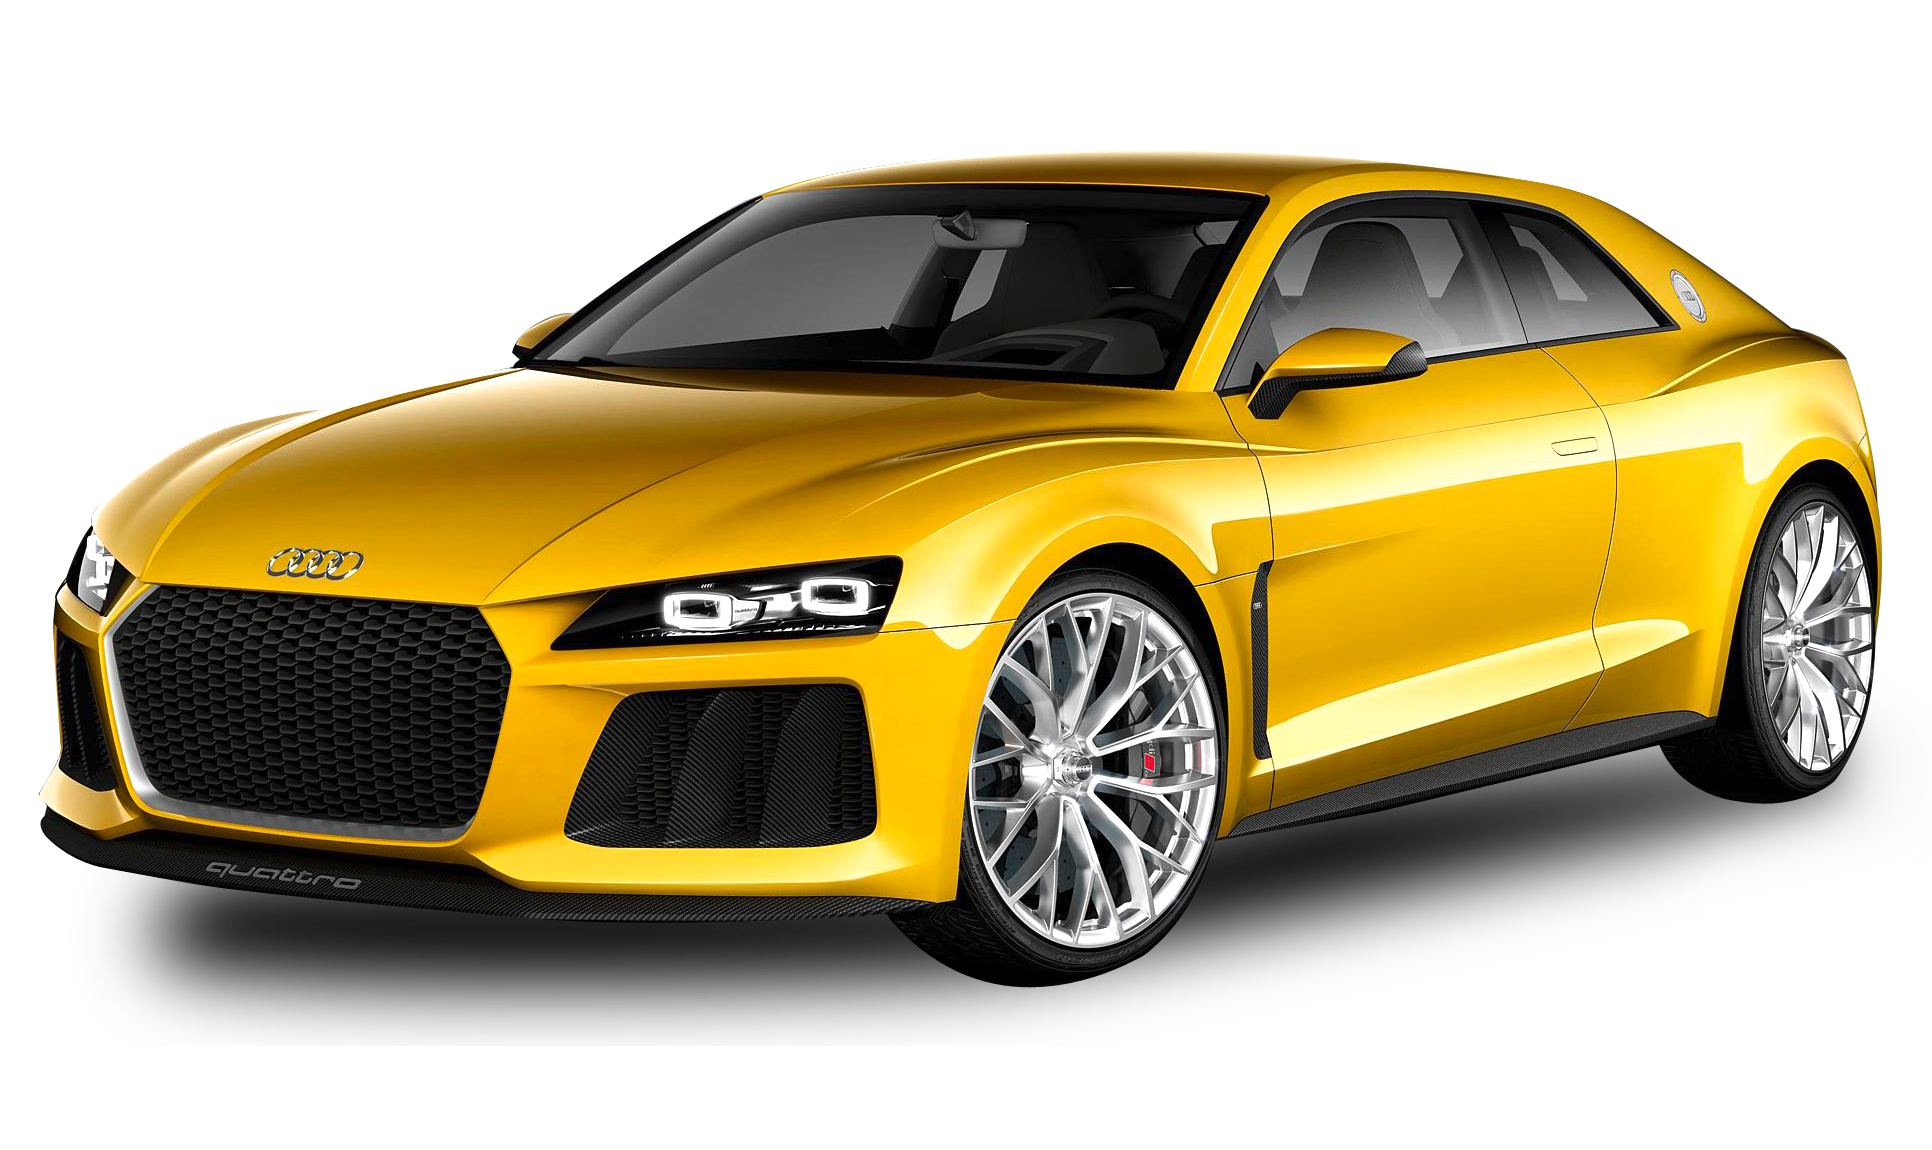 Audi Car PNG image side view